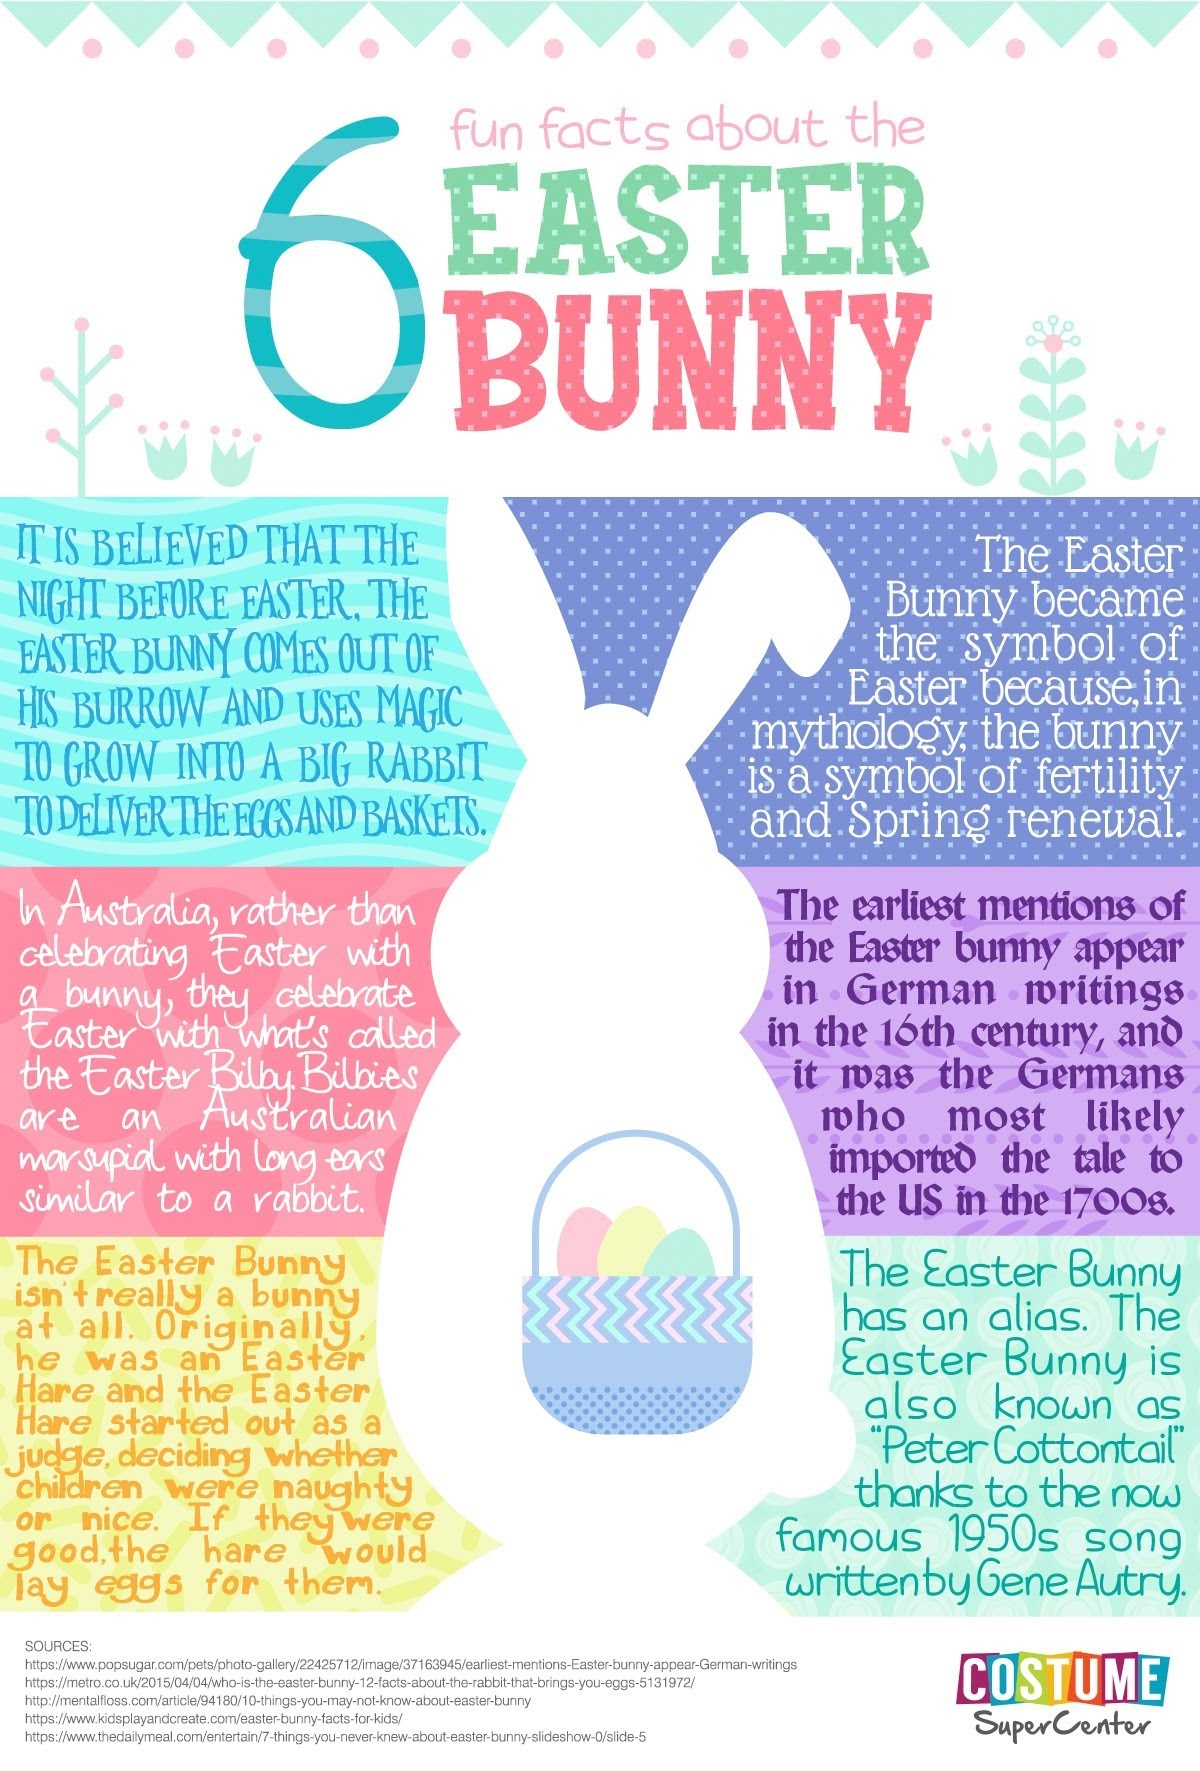 6 Fun Facts About The Easter Bunny #infographic